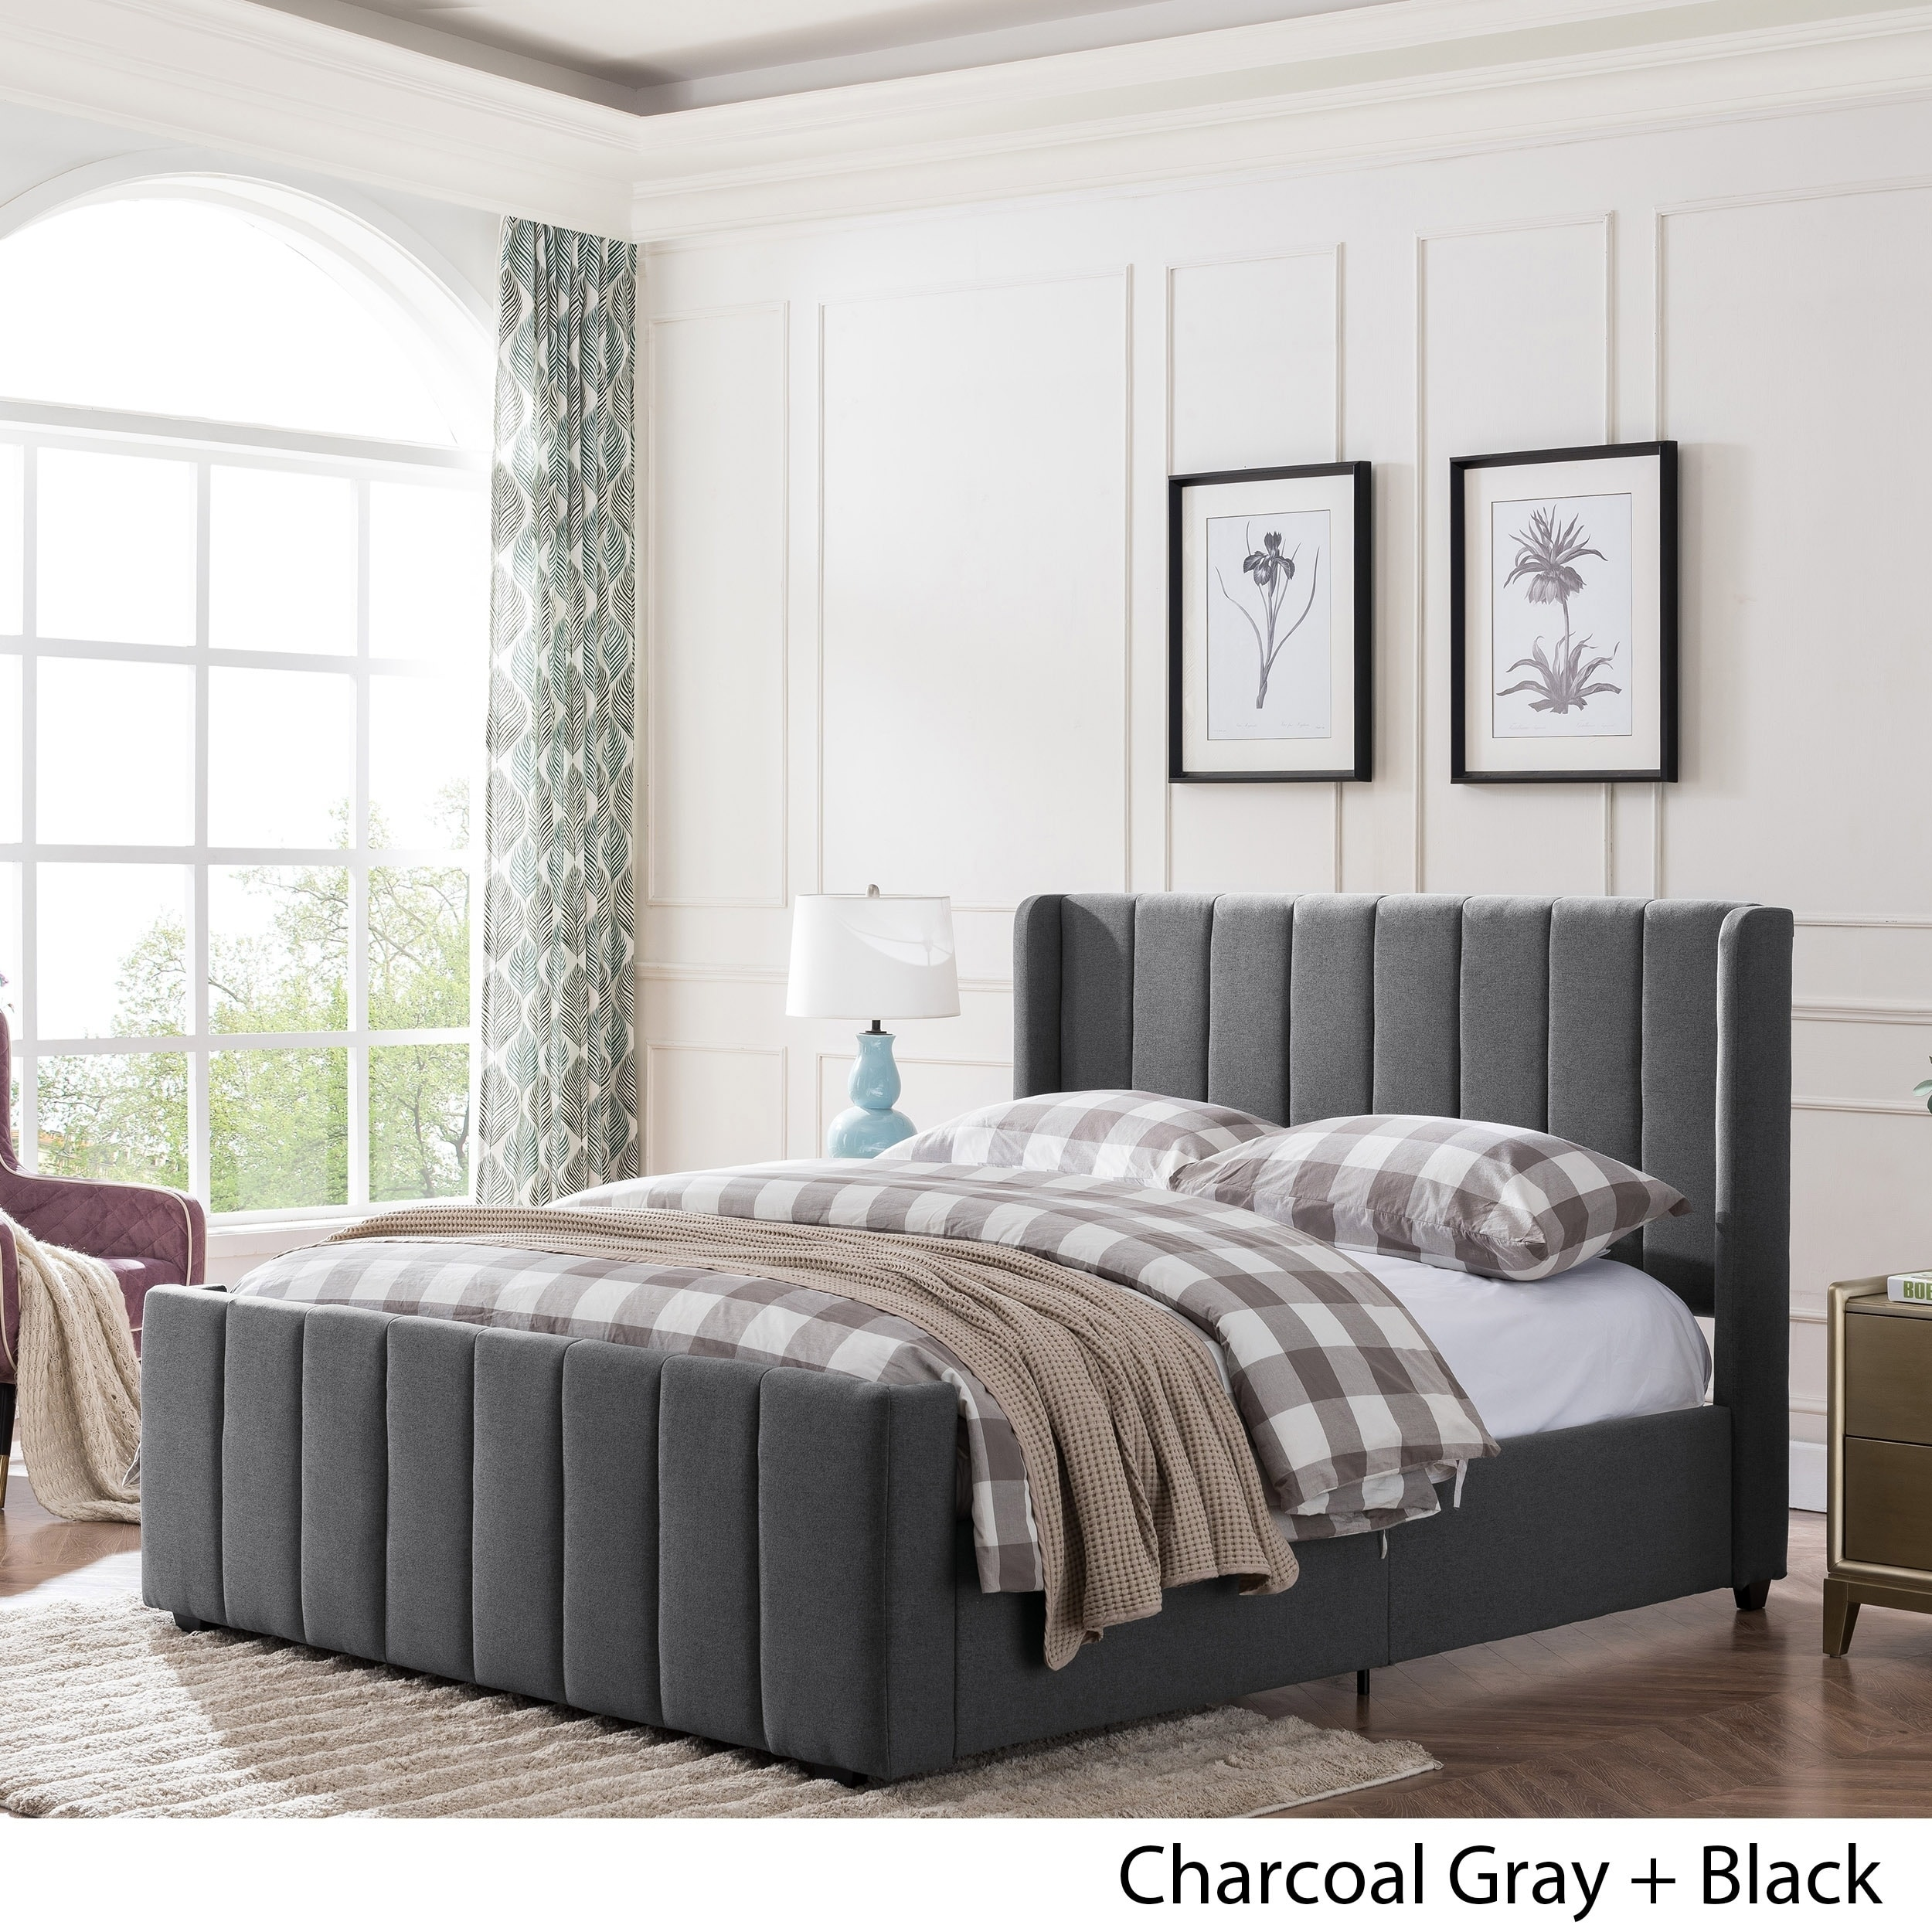 Picture of: Antoinette Traditional Fully Upholstered Queen Size Bed Frame By Christopher Knight Home Overstock 23284493 Charcoal Gray